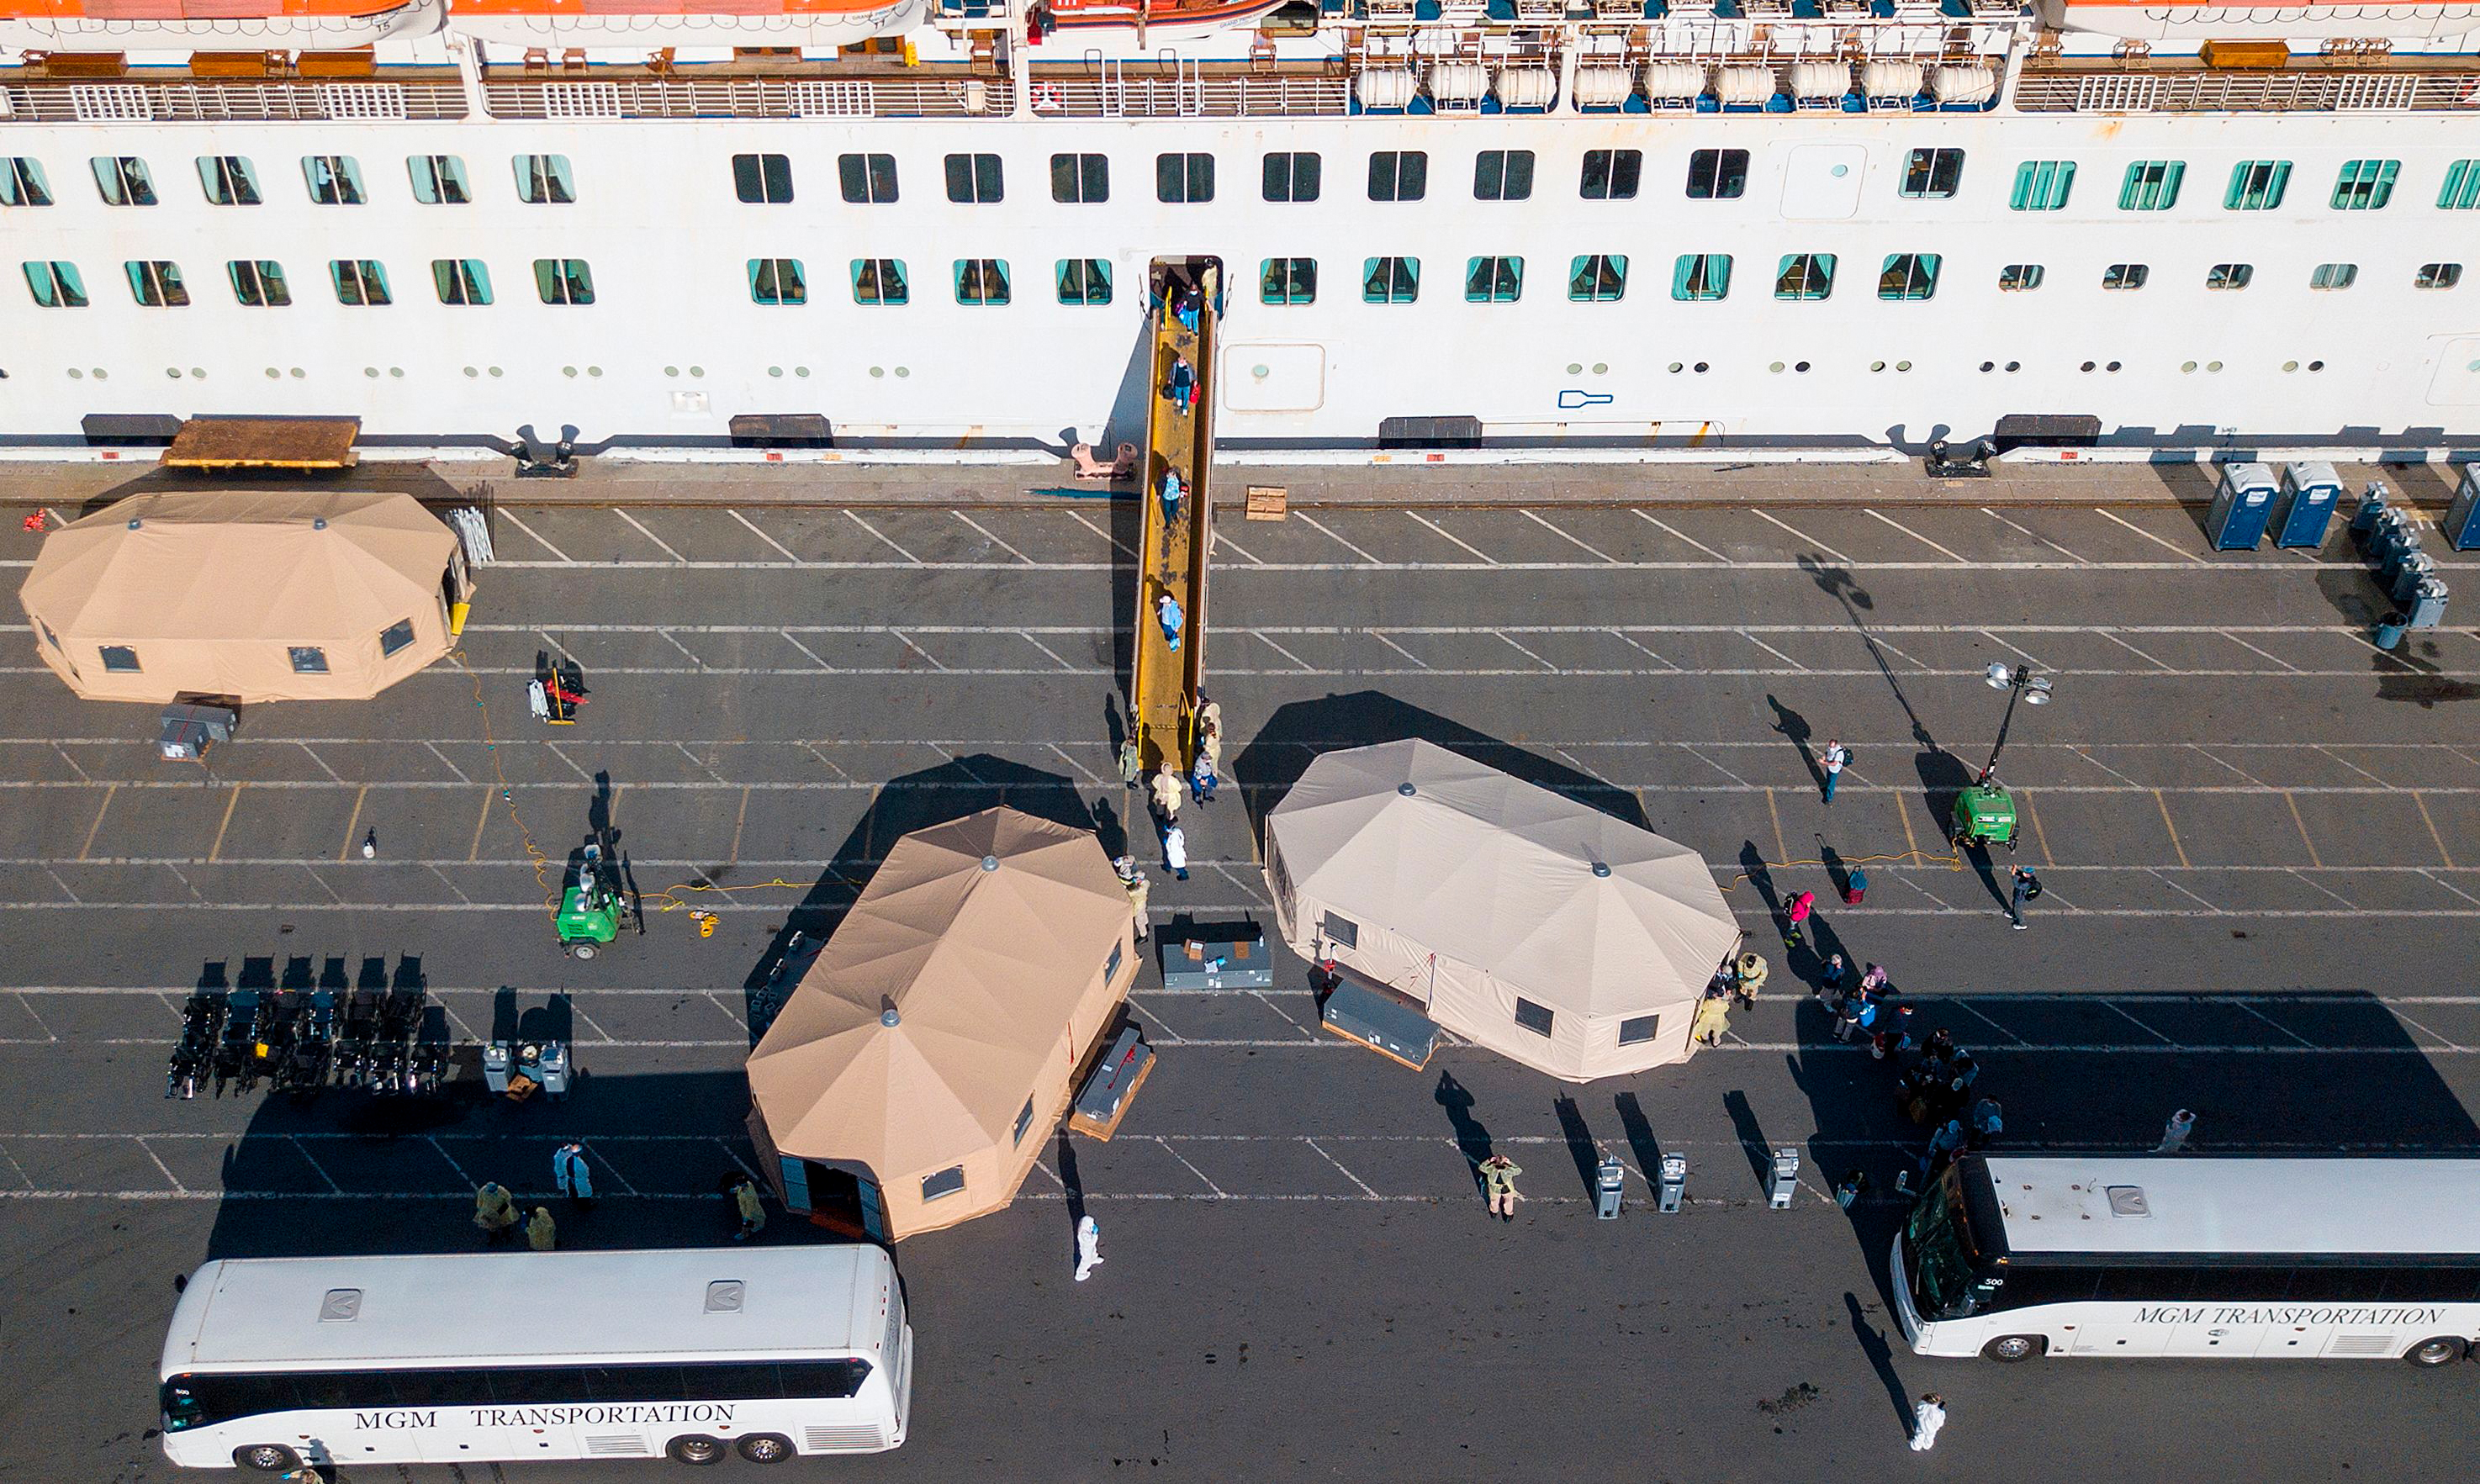 Passengers are disembarked from the Grand Princess cruise ship at the Port of Oakland in Oakland, California on March 10, 2020.